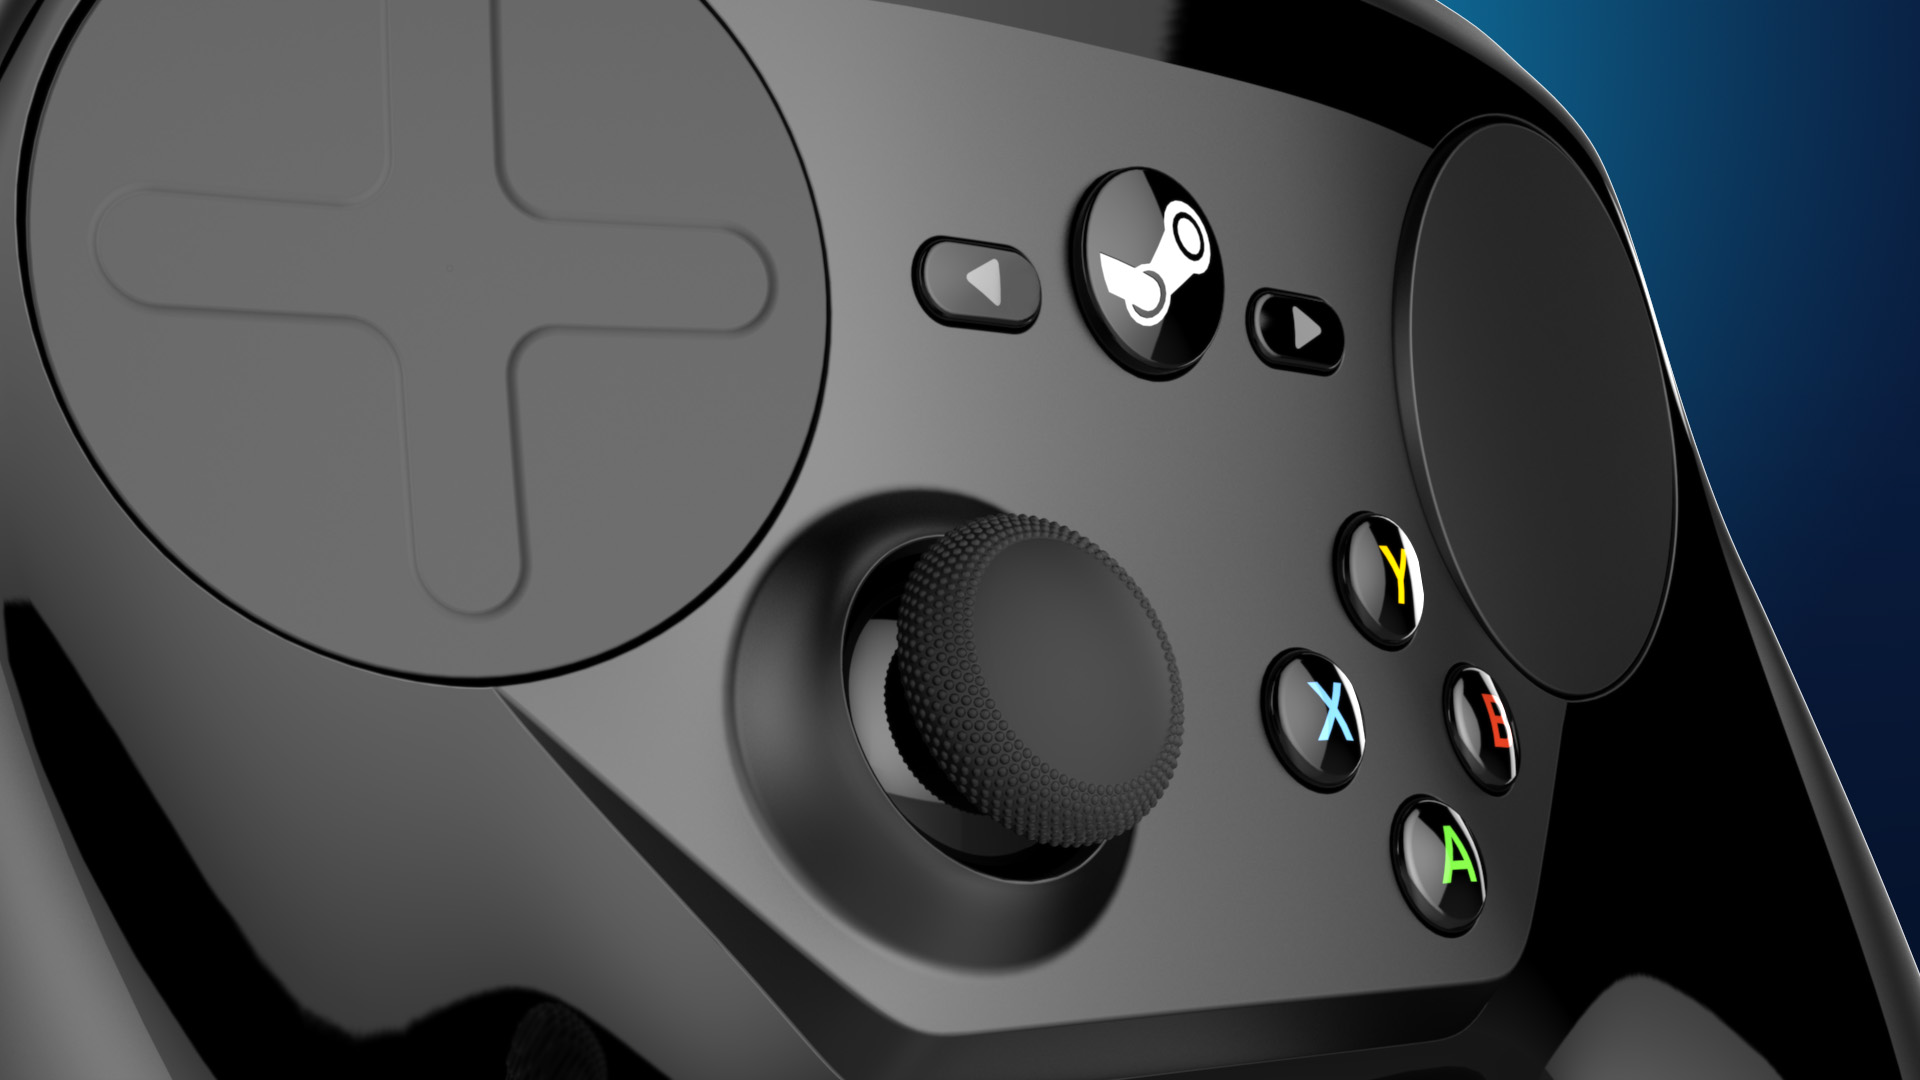 How to make the most of the Steam Controller: a